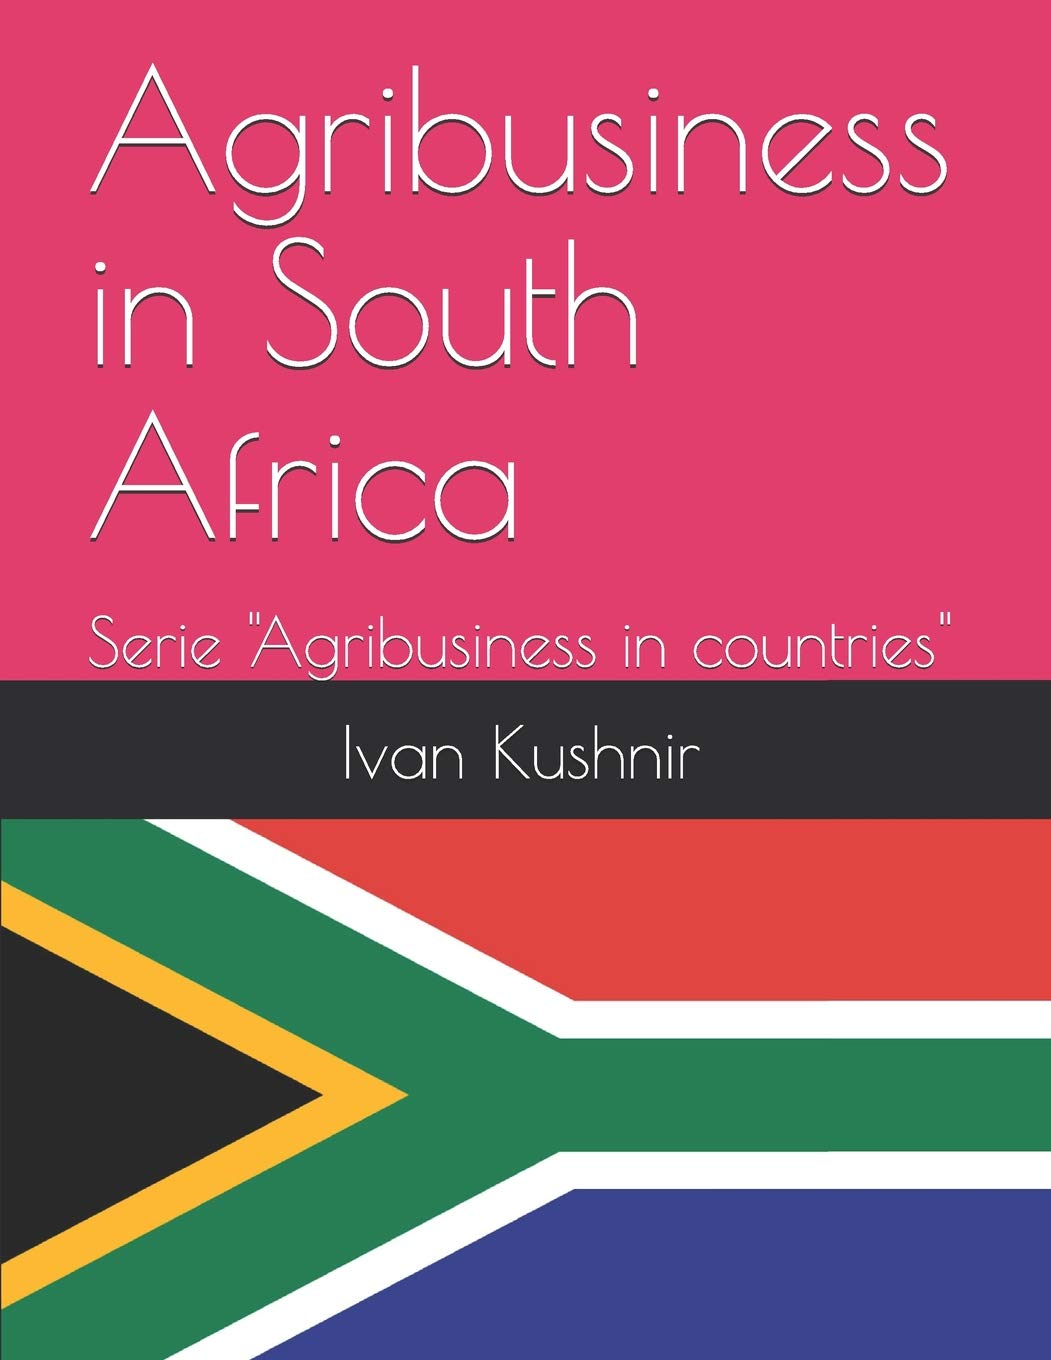 Agribusiness in South Africa (Agribusiness in countries